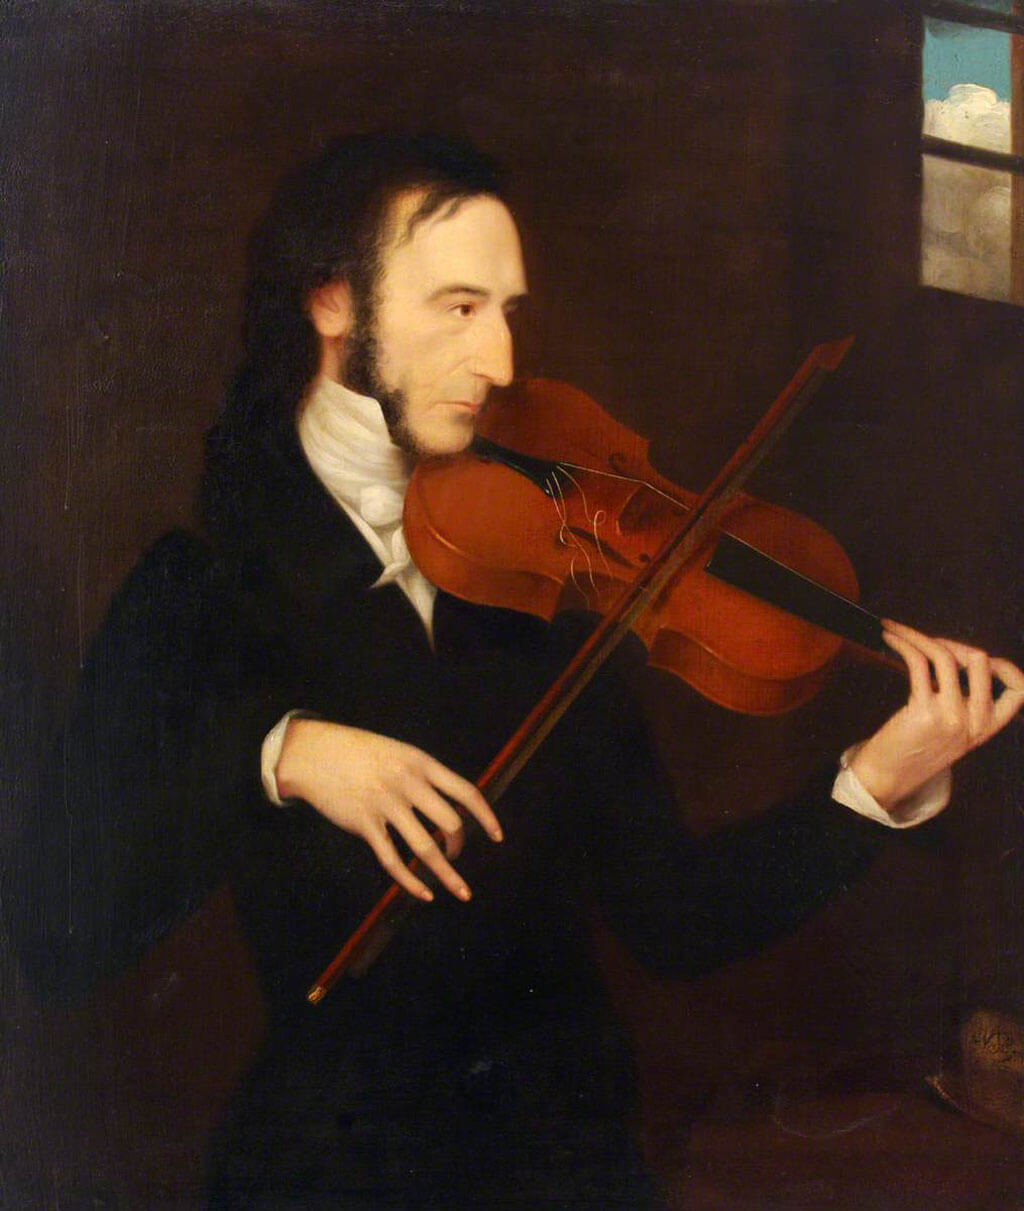 Niccolò Paganini (1782–1840), Daniel Maclise, Royal Academy of Music